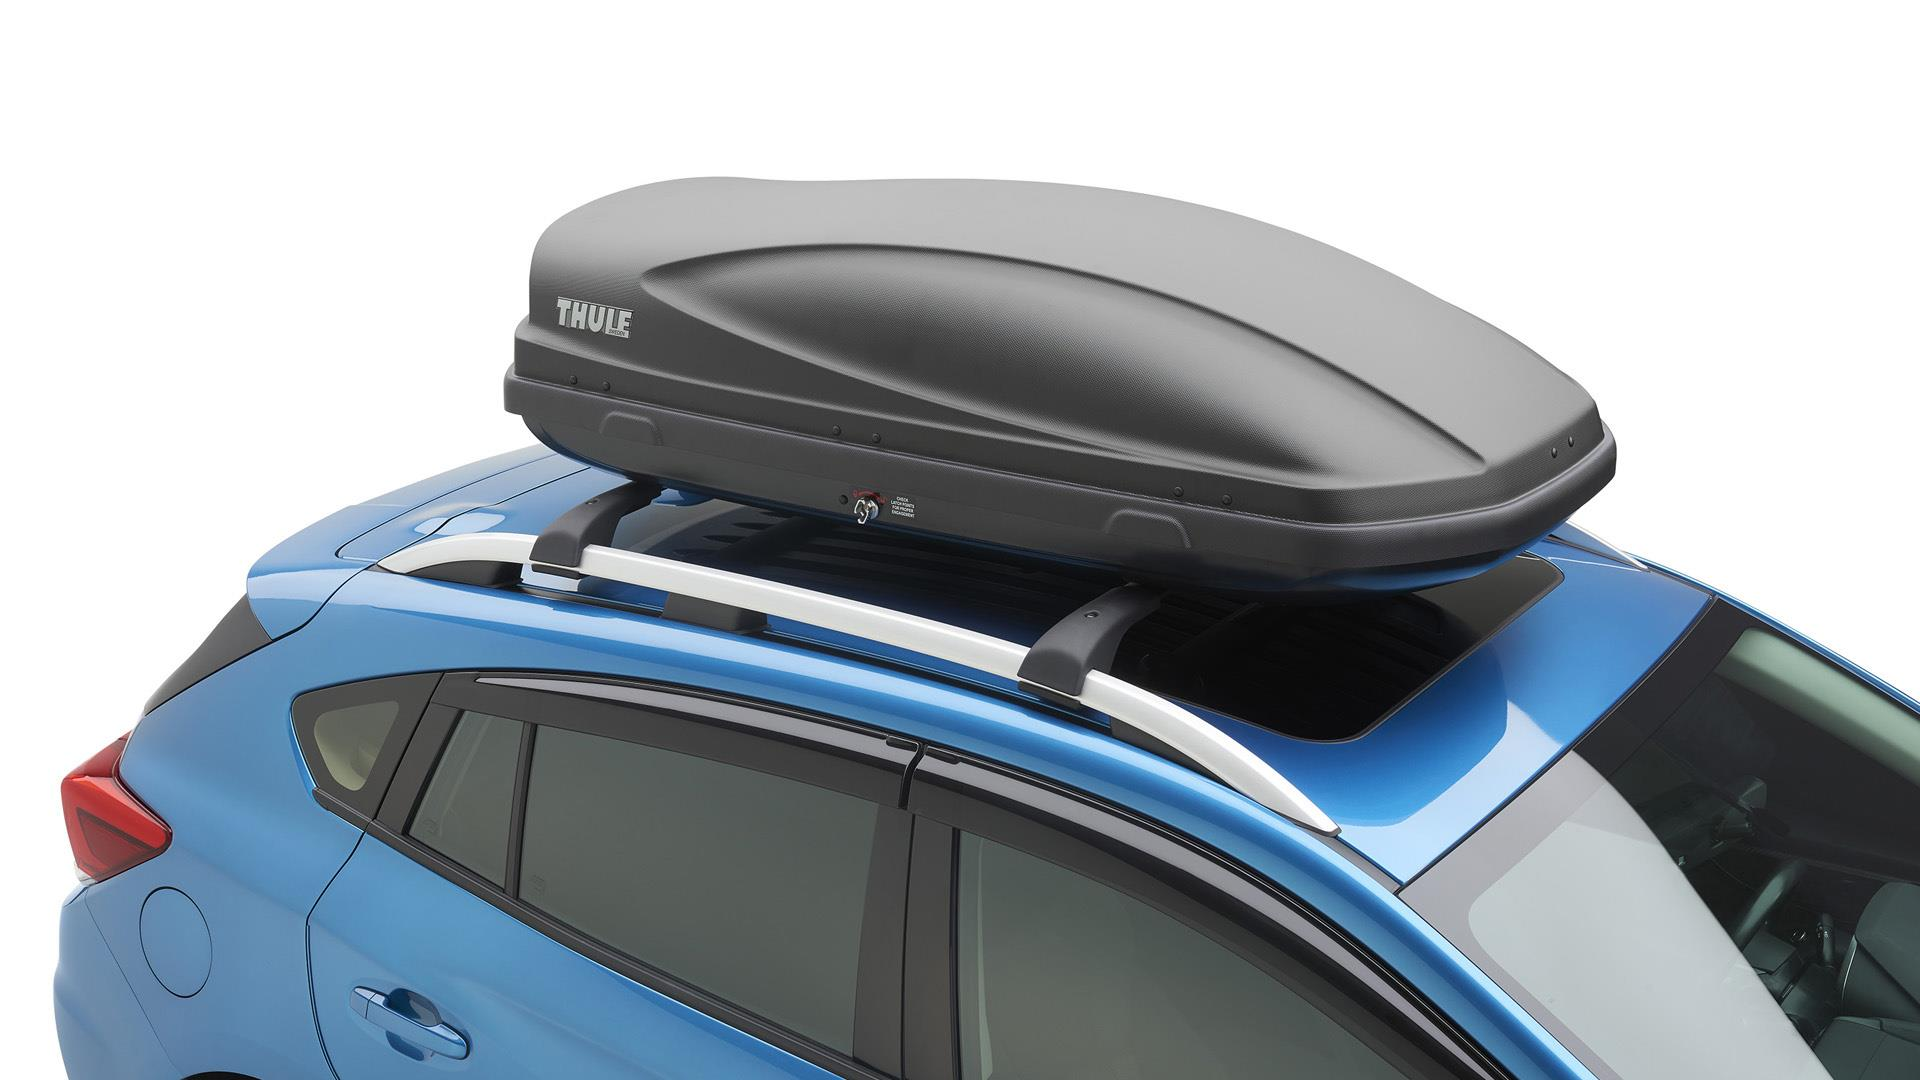 2017 subaru outback thule roof cargo carrier provides side soa567c020 heuberger subaru. Black Bedroom Furniture Sets. Home Design Ideas